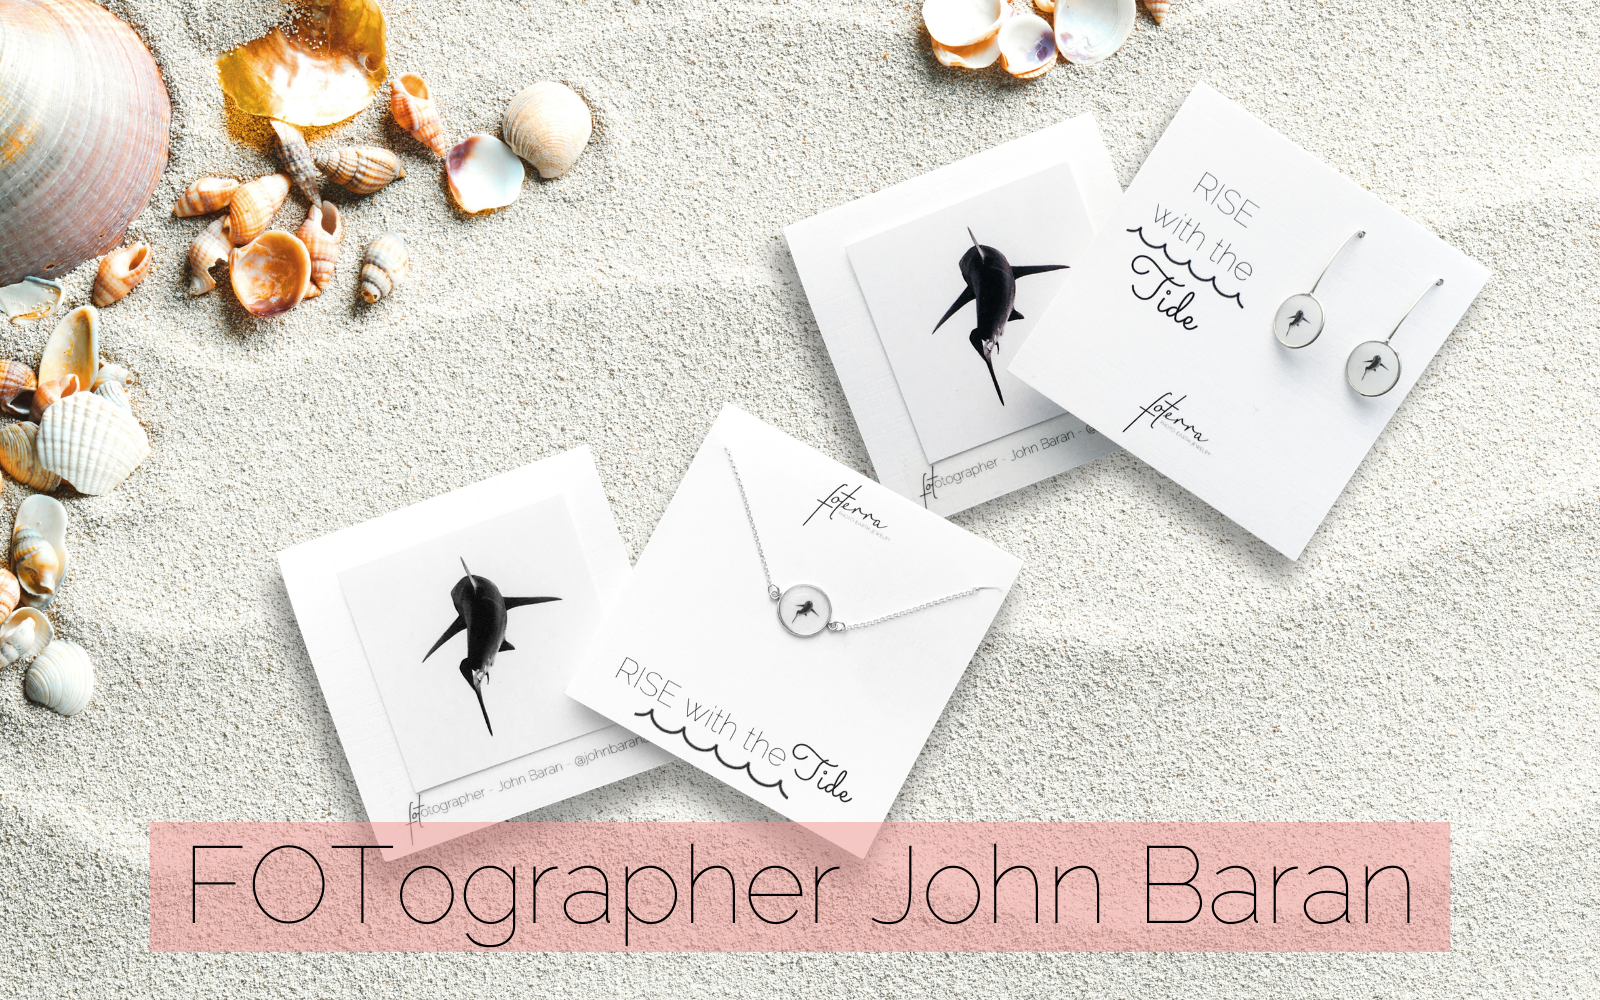 New Photo Jewelry Collection by Fotographer John Baran